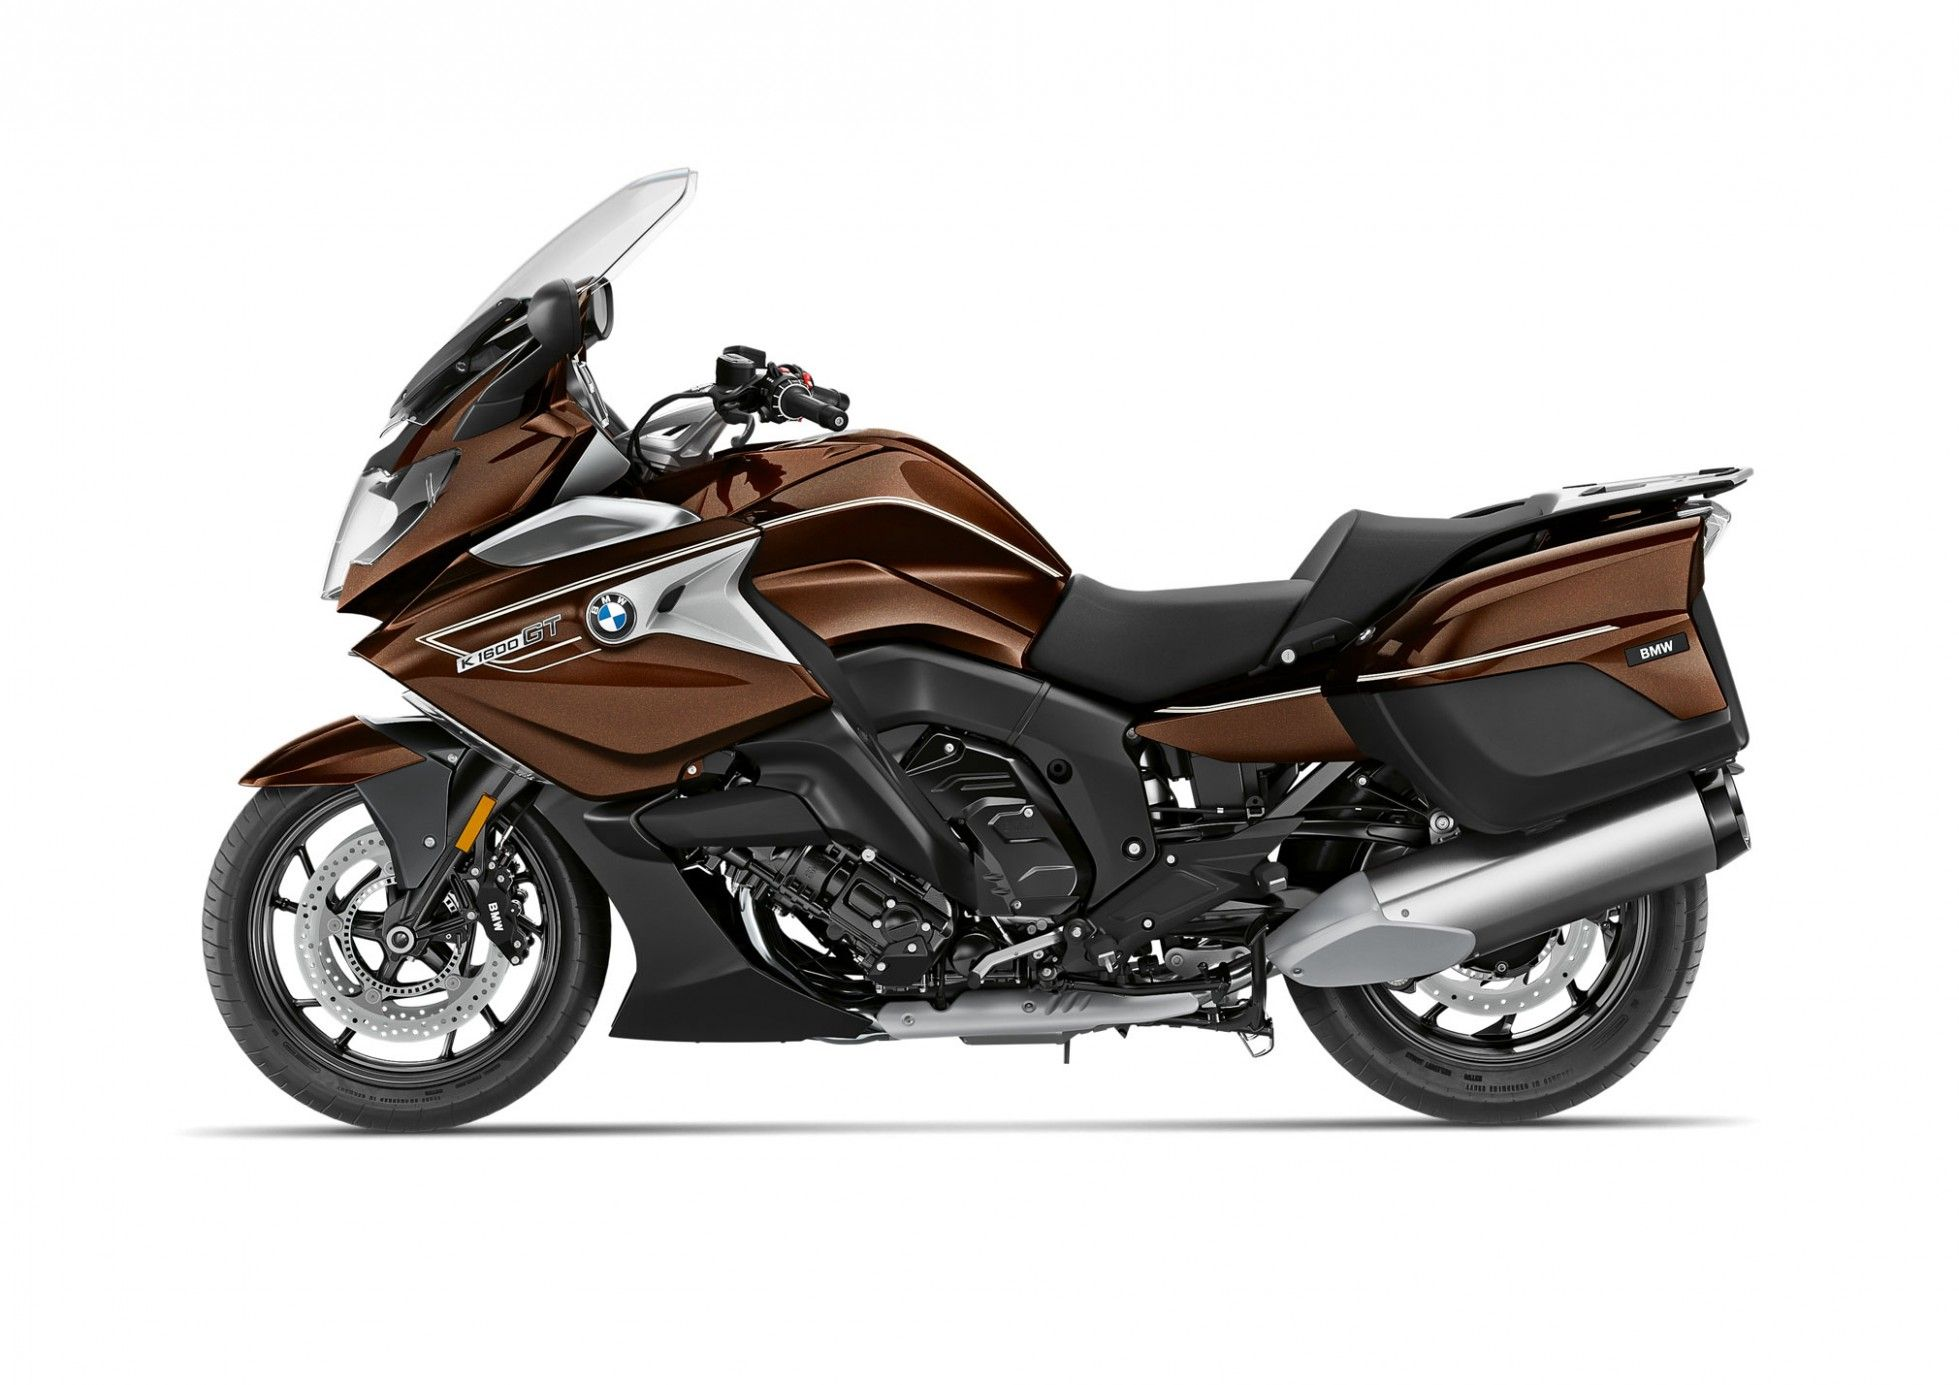 Bmw K1600gt 2020 In 2020 Bmw Motorcycles In India Concept Cars